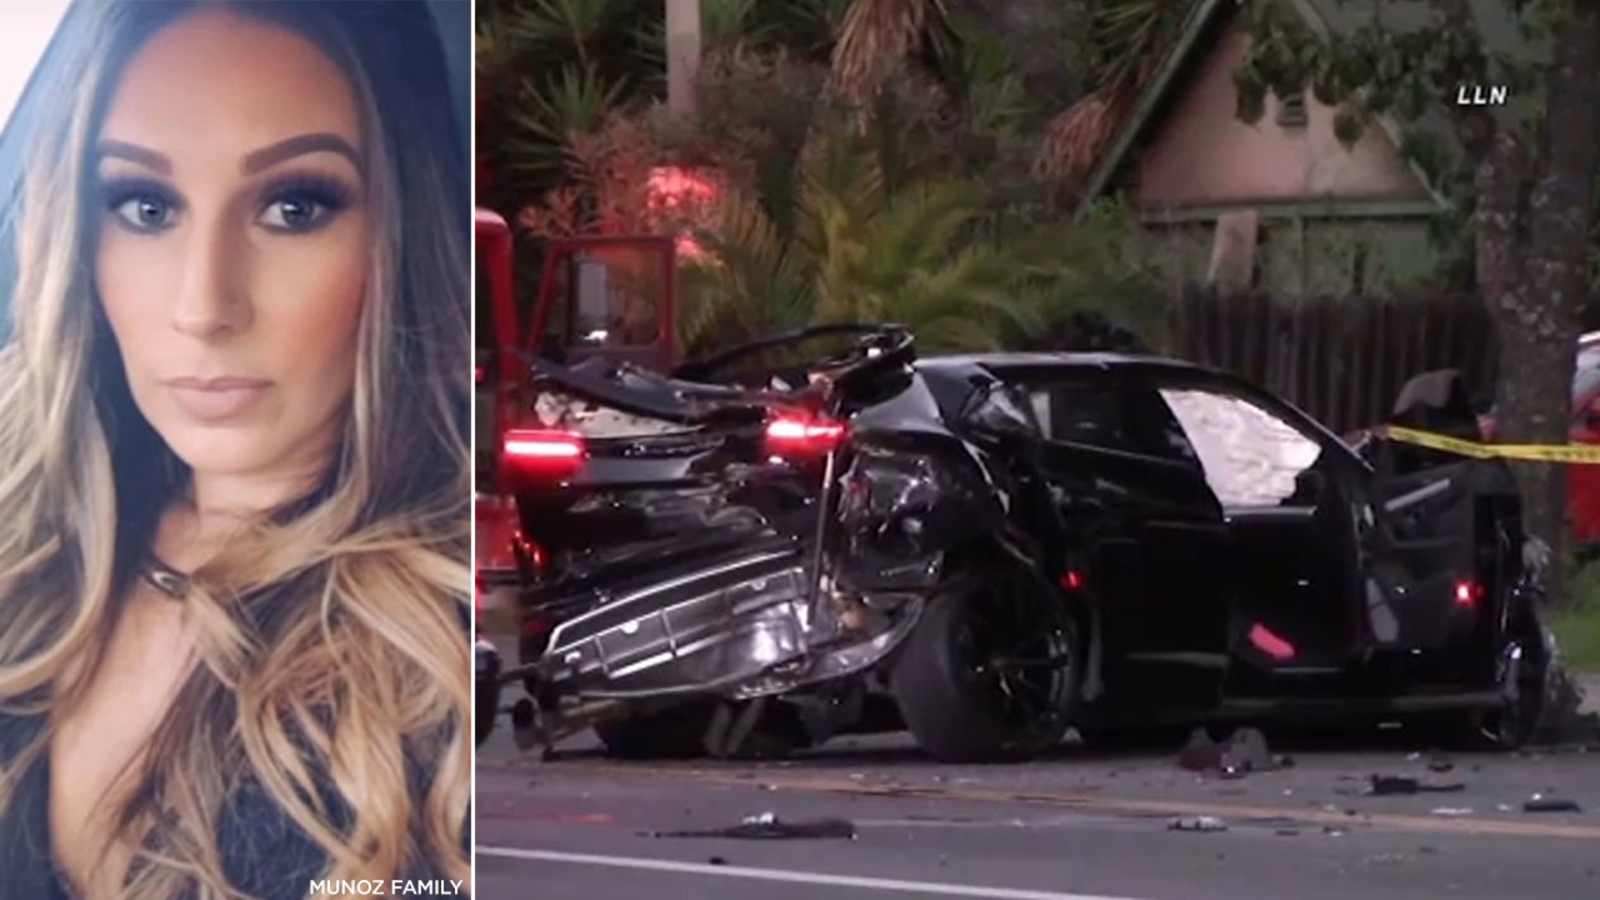 Charges filed against teen driver involved in West LA Lamborghini crash that killed 32-year-old woman